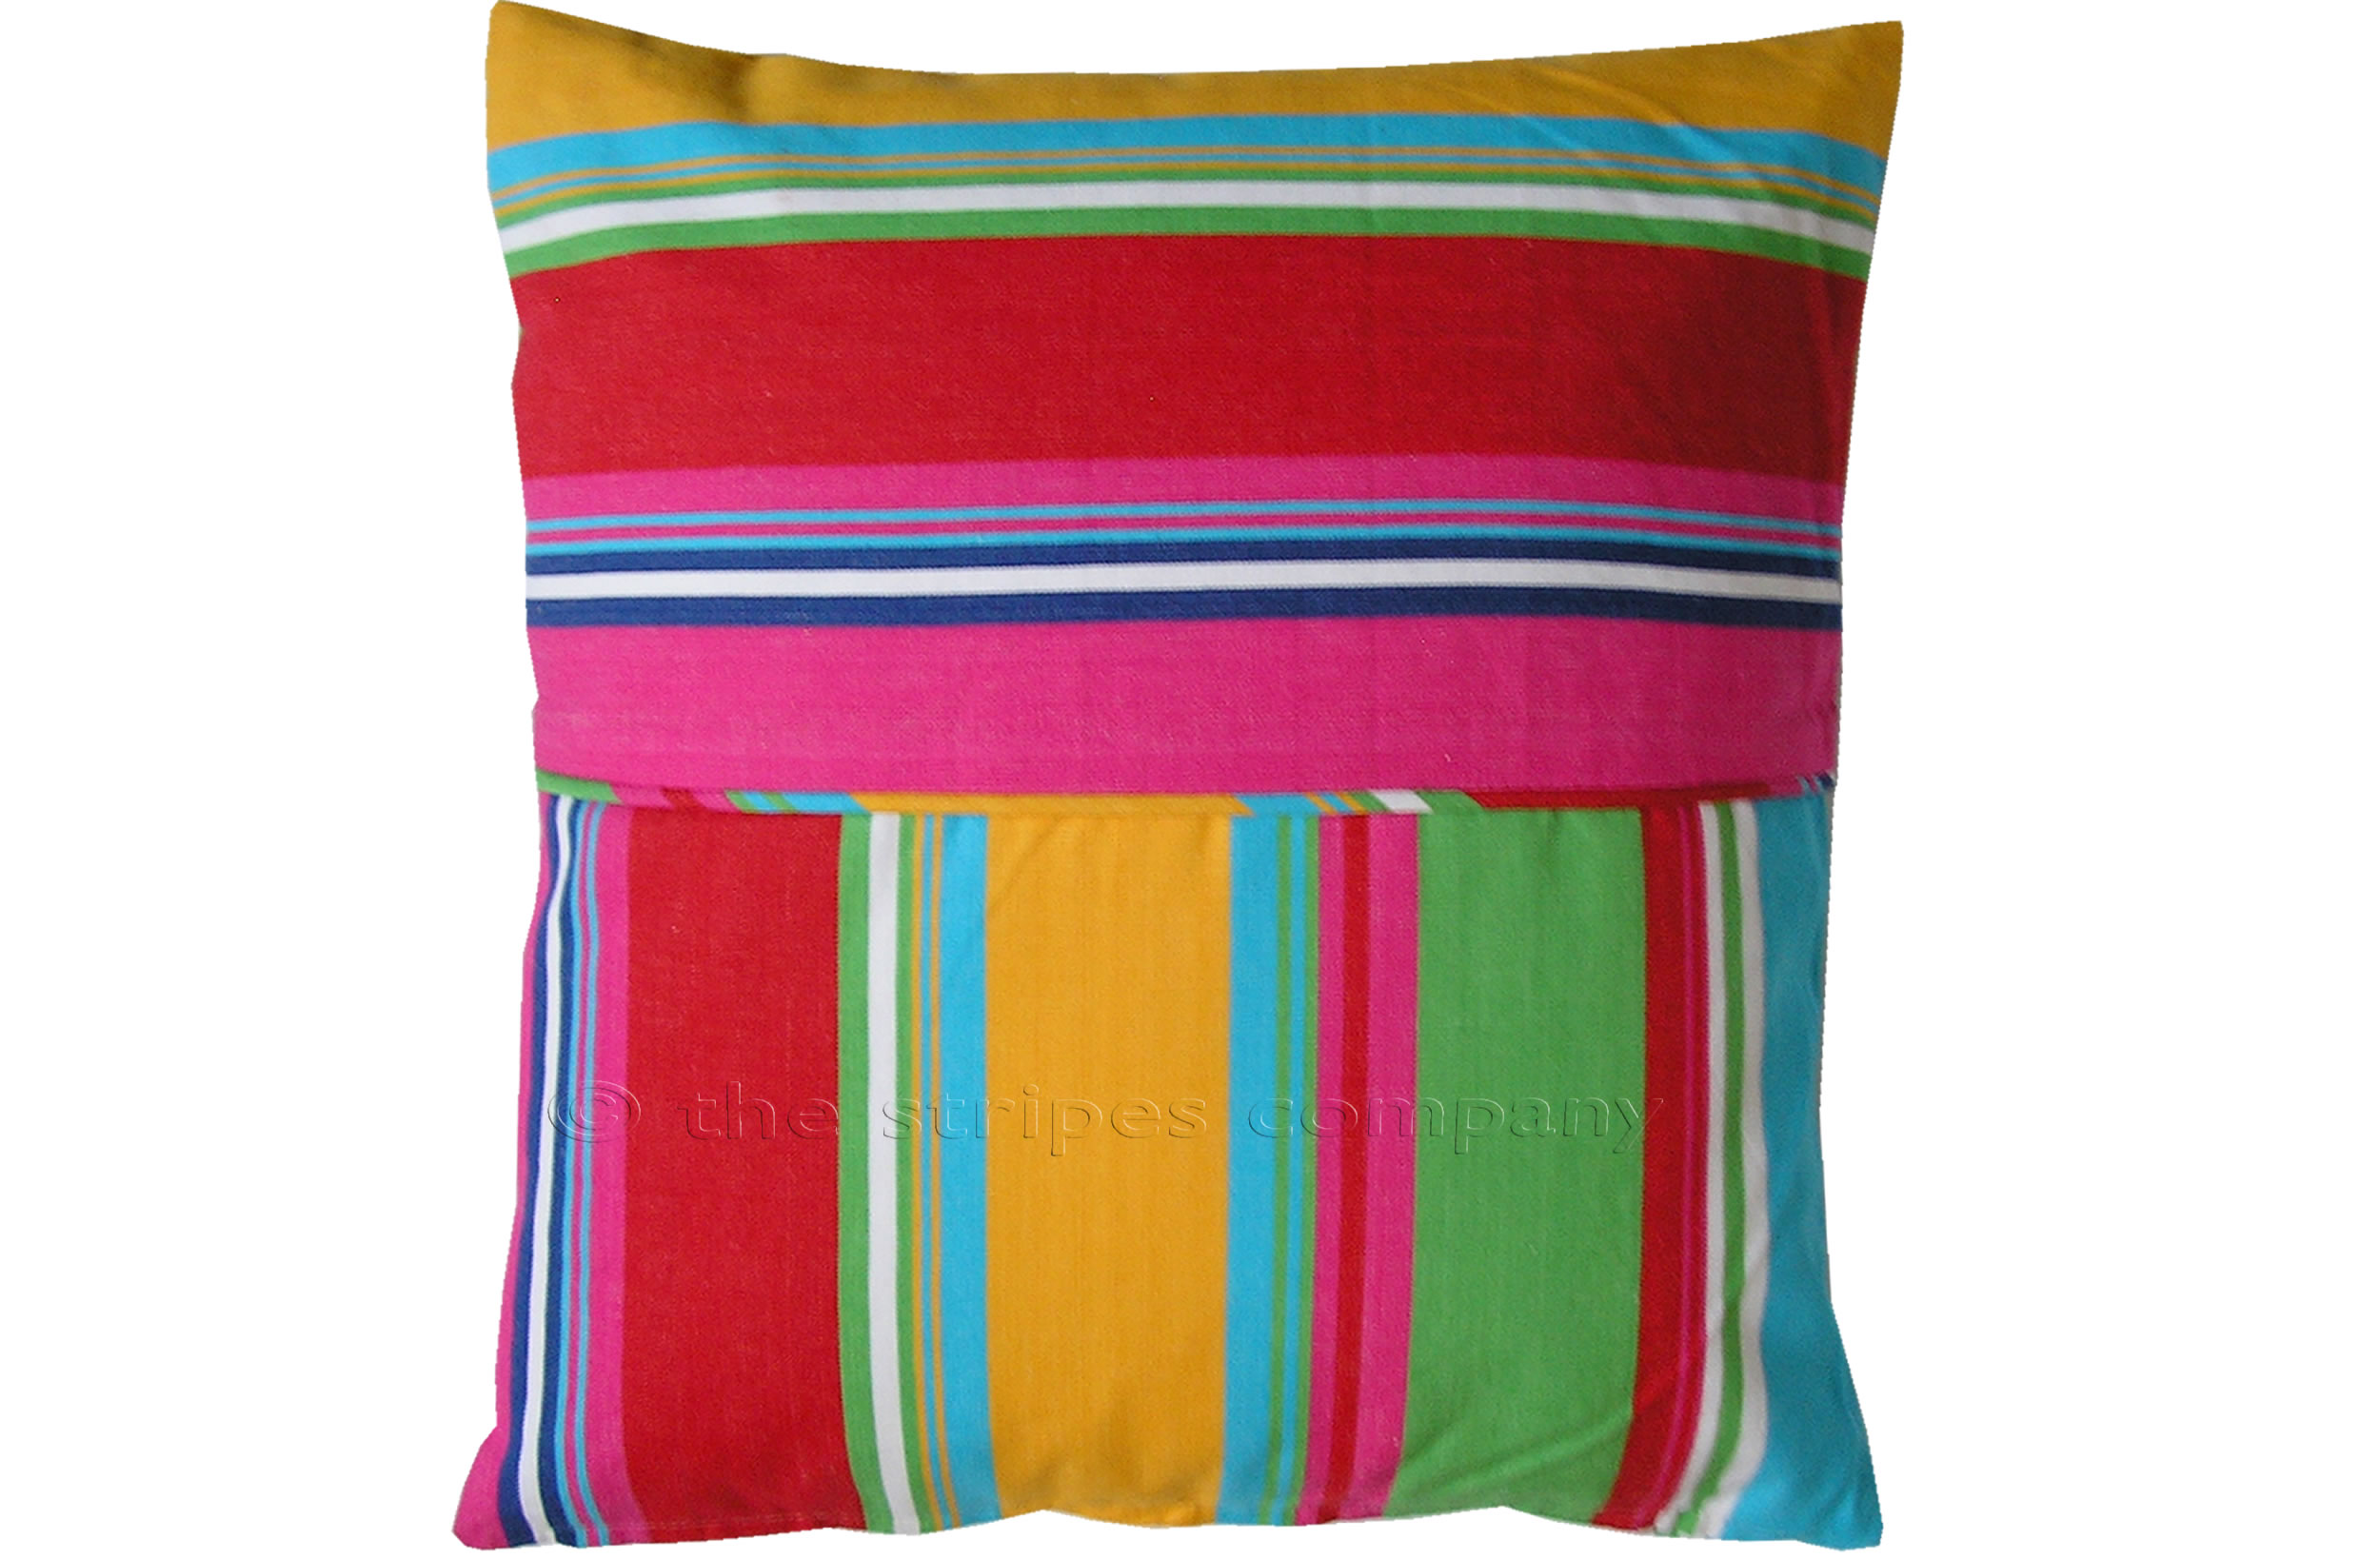 Pink Striped Piped Cushions | Square Piped Cushions Pink  Green  Yellow  Stripes